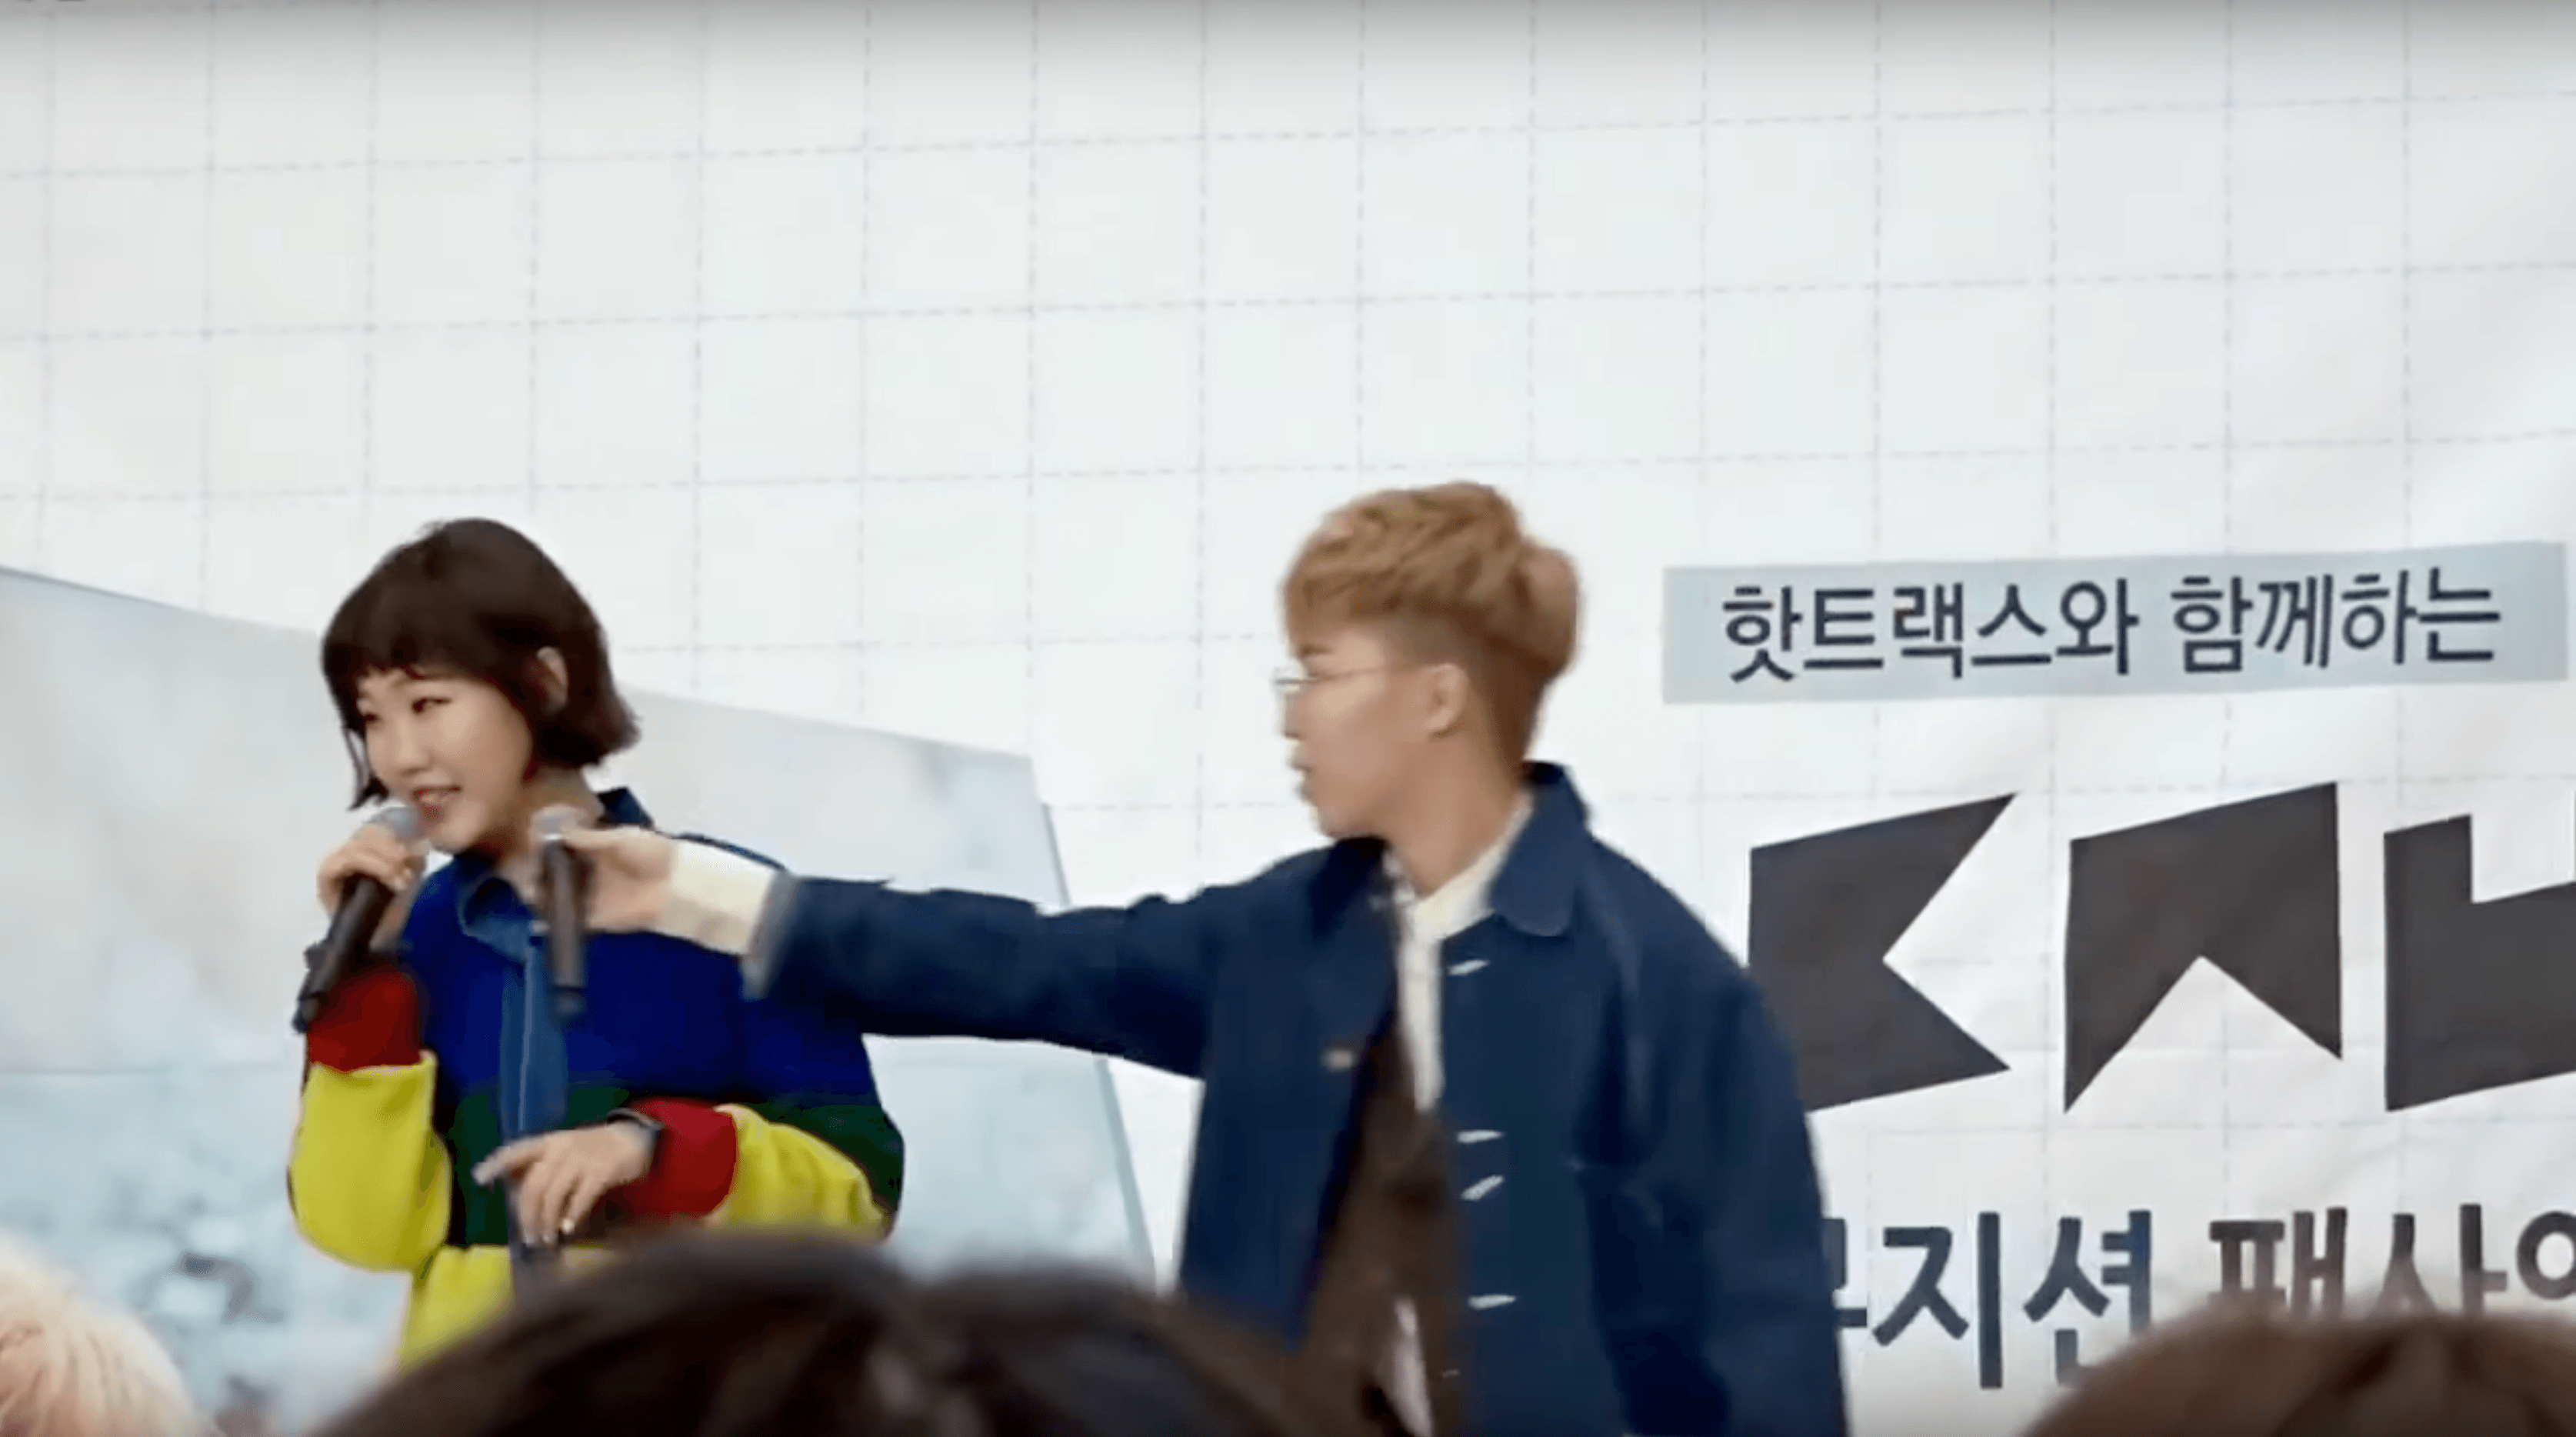 Akdong Musician Reacts To Unexpected Problem In The Most Unconventional Way